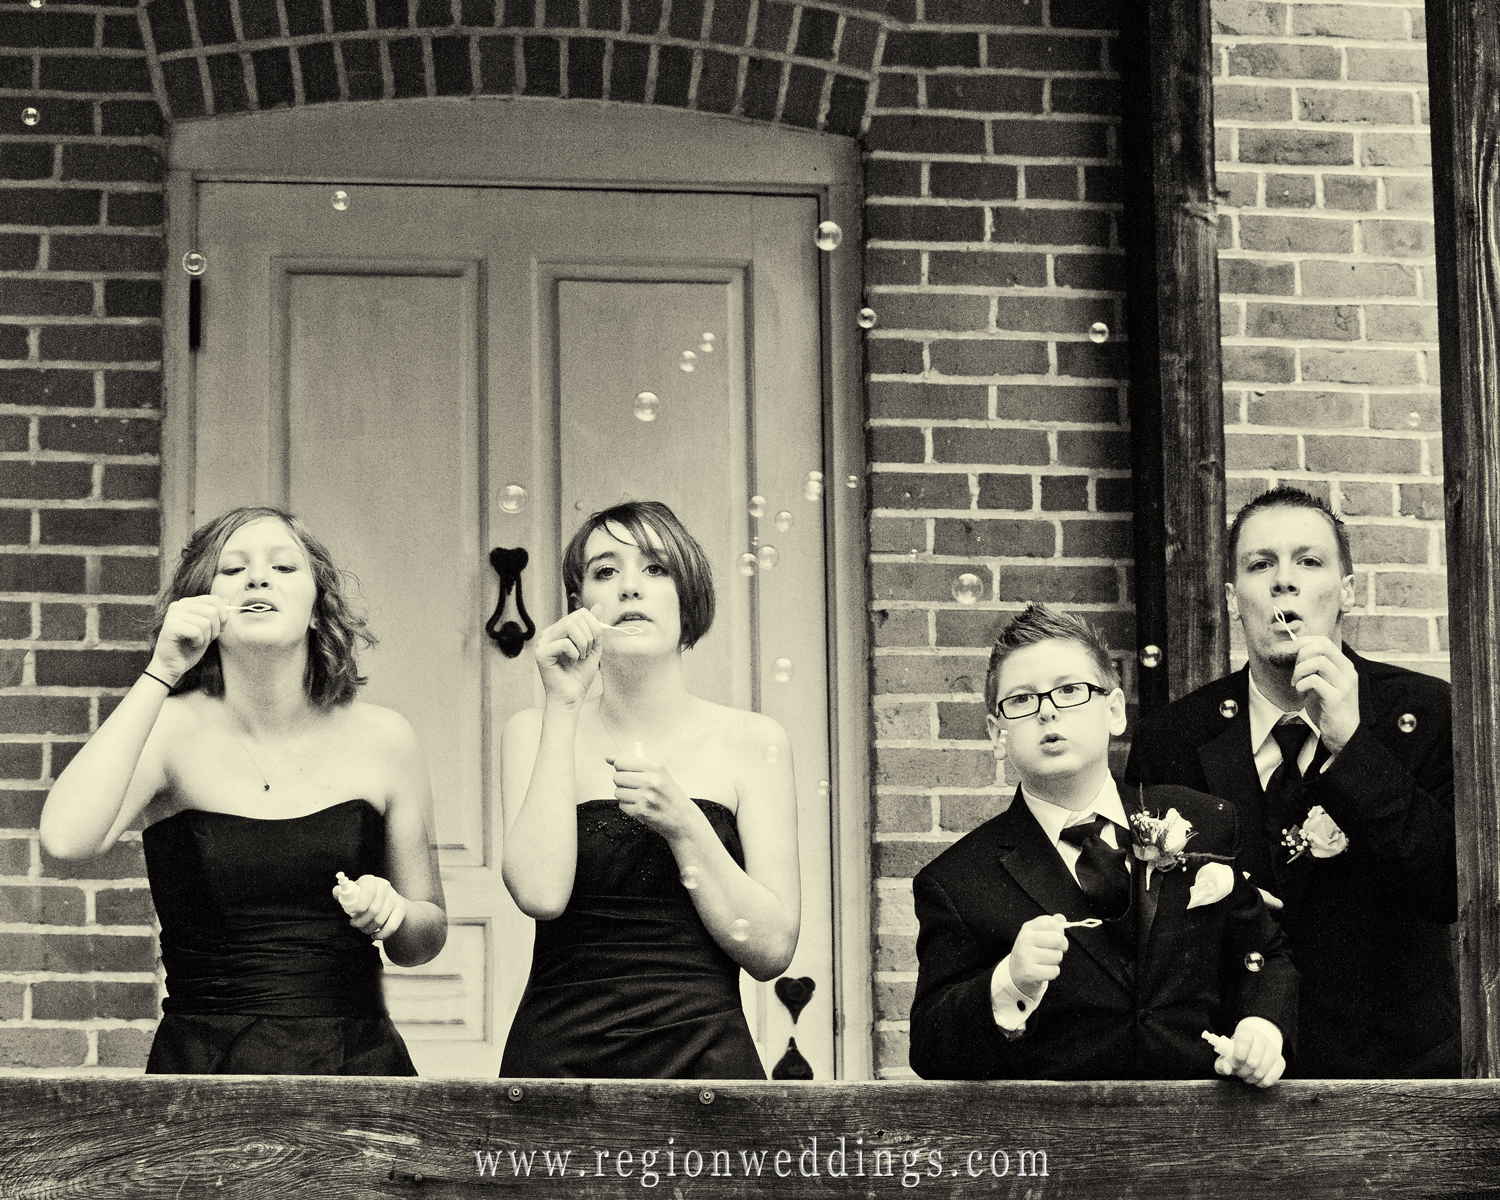 The sons and daughters of the bride and groom blow bubbles at an outdoor wedding at Deep River Park in Hobart, Indiana.